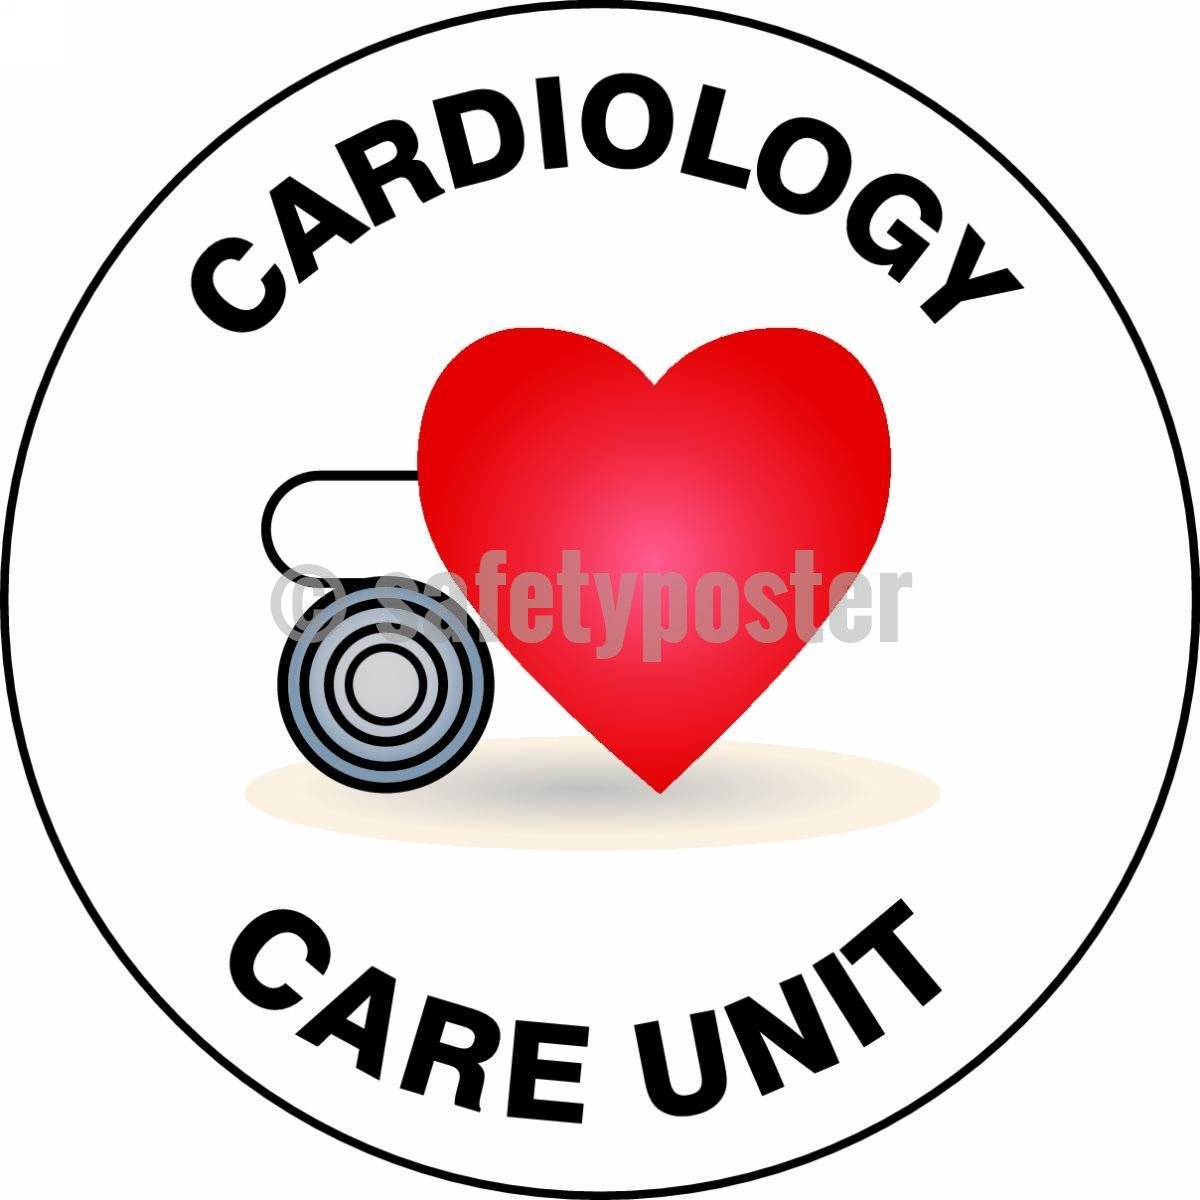 Cardiology Care Unit - Floor Sign Adhesive Signs